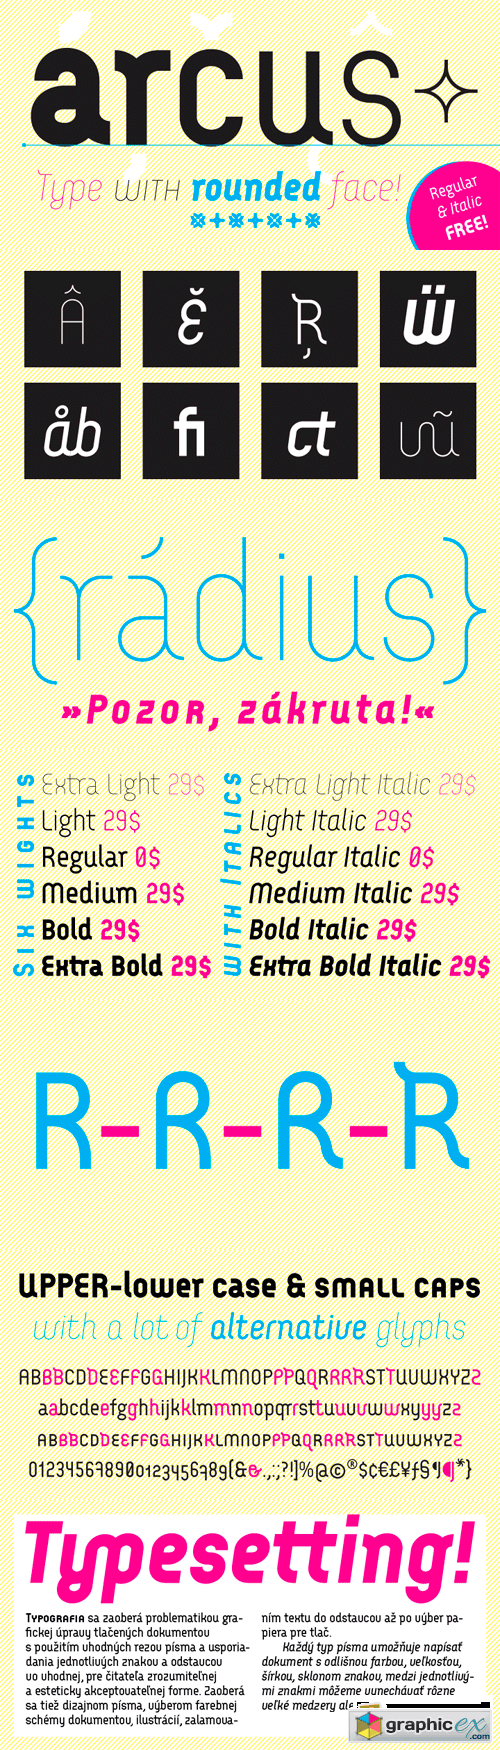 Arcus Font Family - 12 Fonts for $180